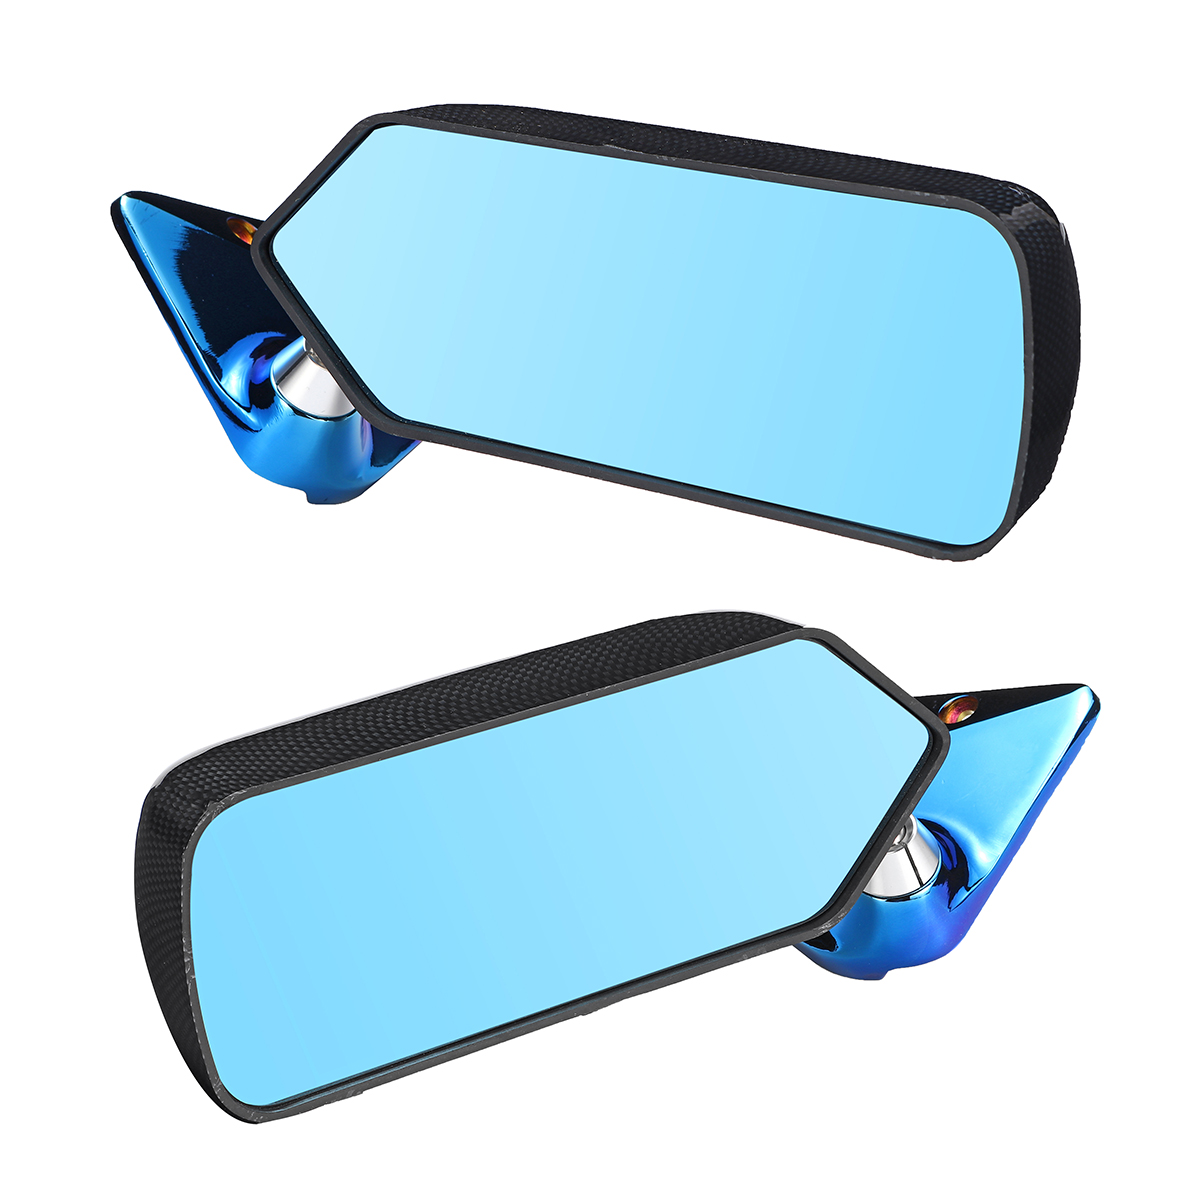 2x Universal Car Side Mirror Rearview Wing Retro Mirror Metal Bracket Side Mirror Set F1 Style Carbon Fiber Look Blue2x Universal Car Side Mirror Rearview Wing Retro Mirror Metal Bracket Side Mirror Set F1 Style Carbon Fiber Look Blue